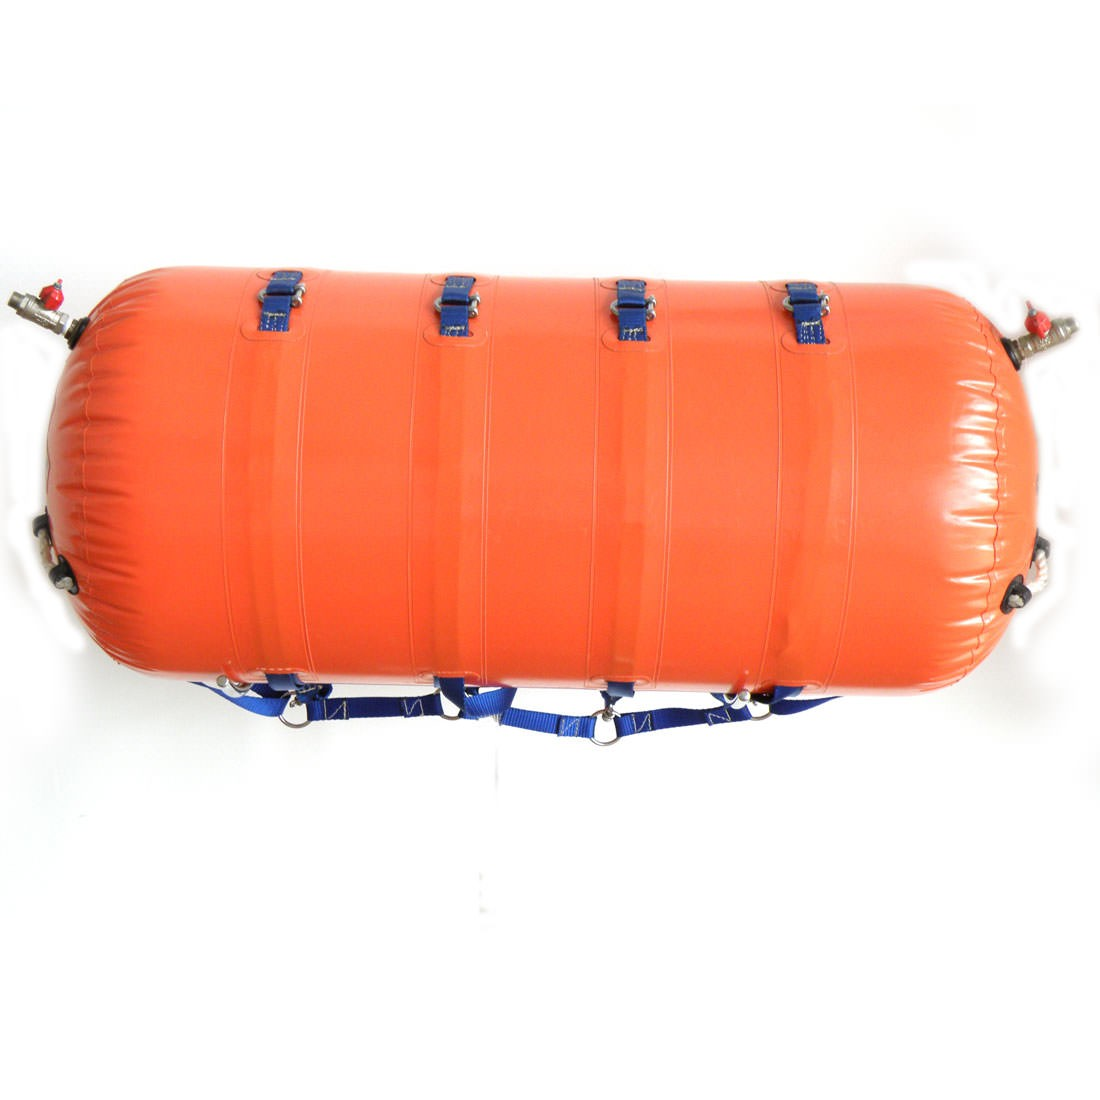 Seaflex 5 Ton Inflatable Buoyancy Unit